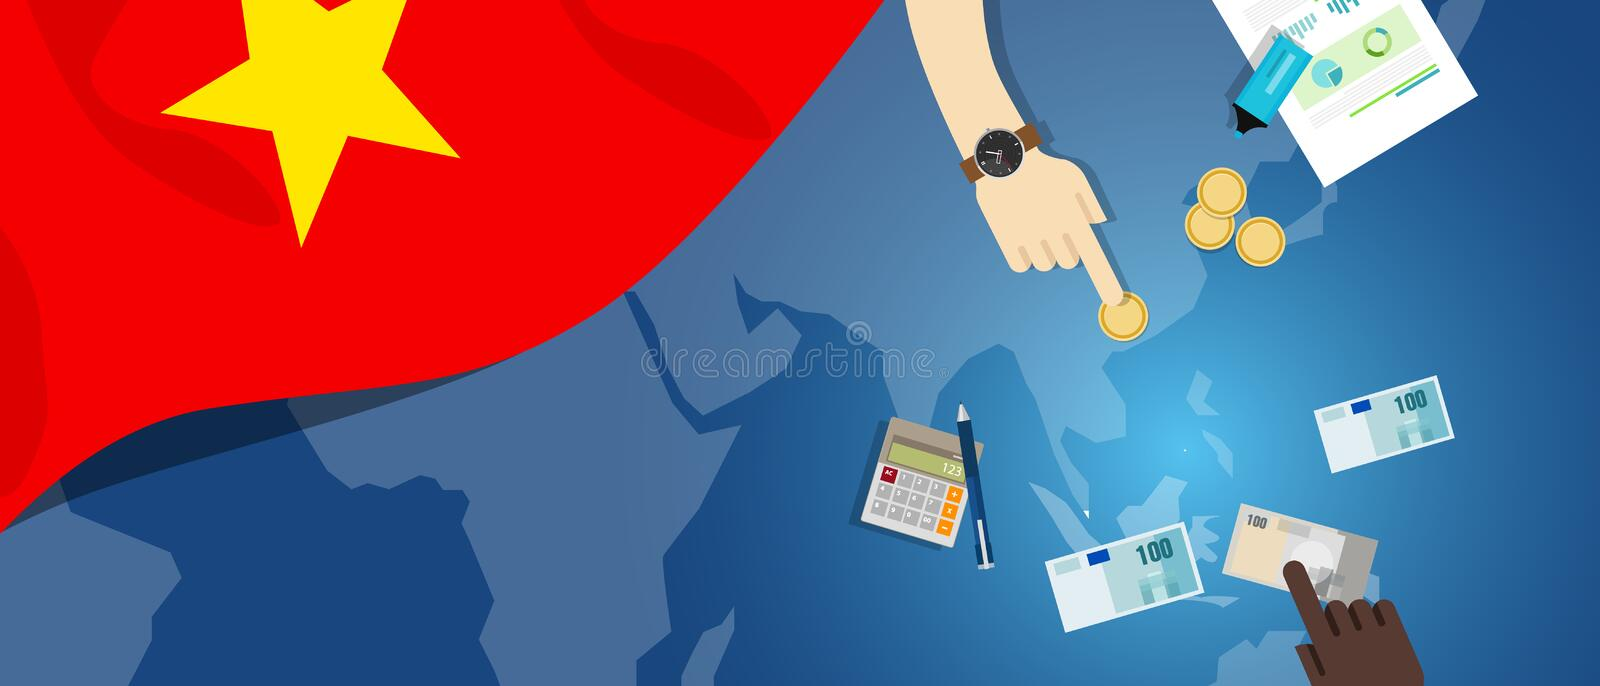 Vietnam economy fiscal money trade concept illustration of financial banking budget with flag map and currency. Vector royalty free illustration